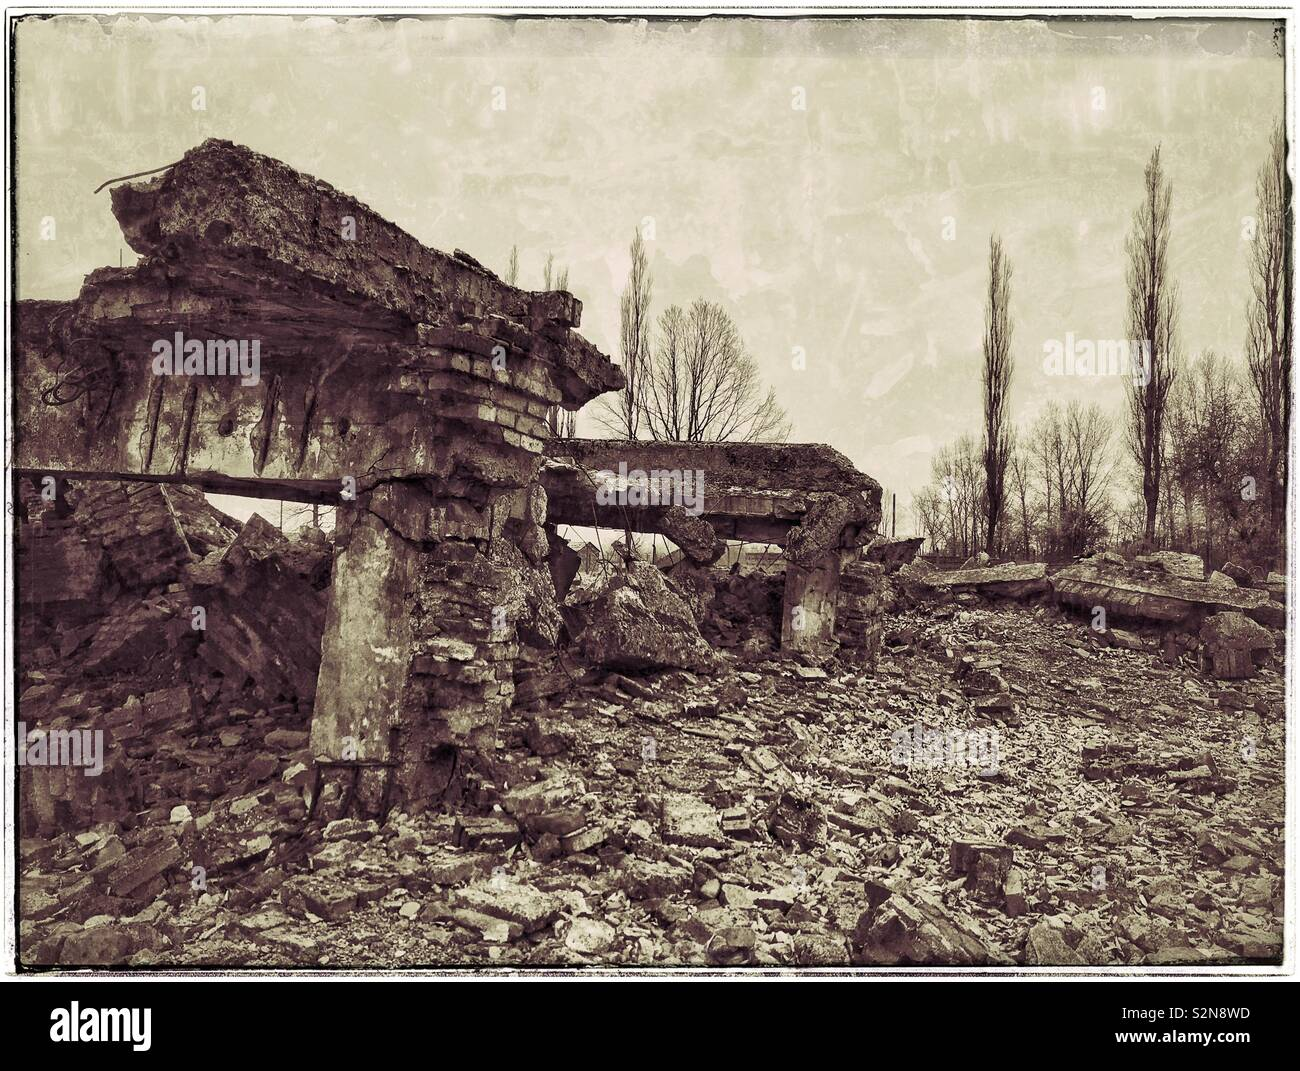 A retro effect image showing what remains of the infamous Gas chamber at the Nazi Auschwitz II-Birkenau Concentration Camp. Destroyed by the Nazis shortly before liberation by Soviet forces in 1945. Stock Photo